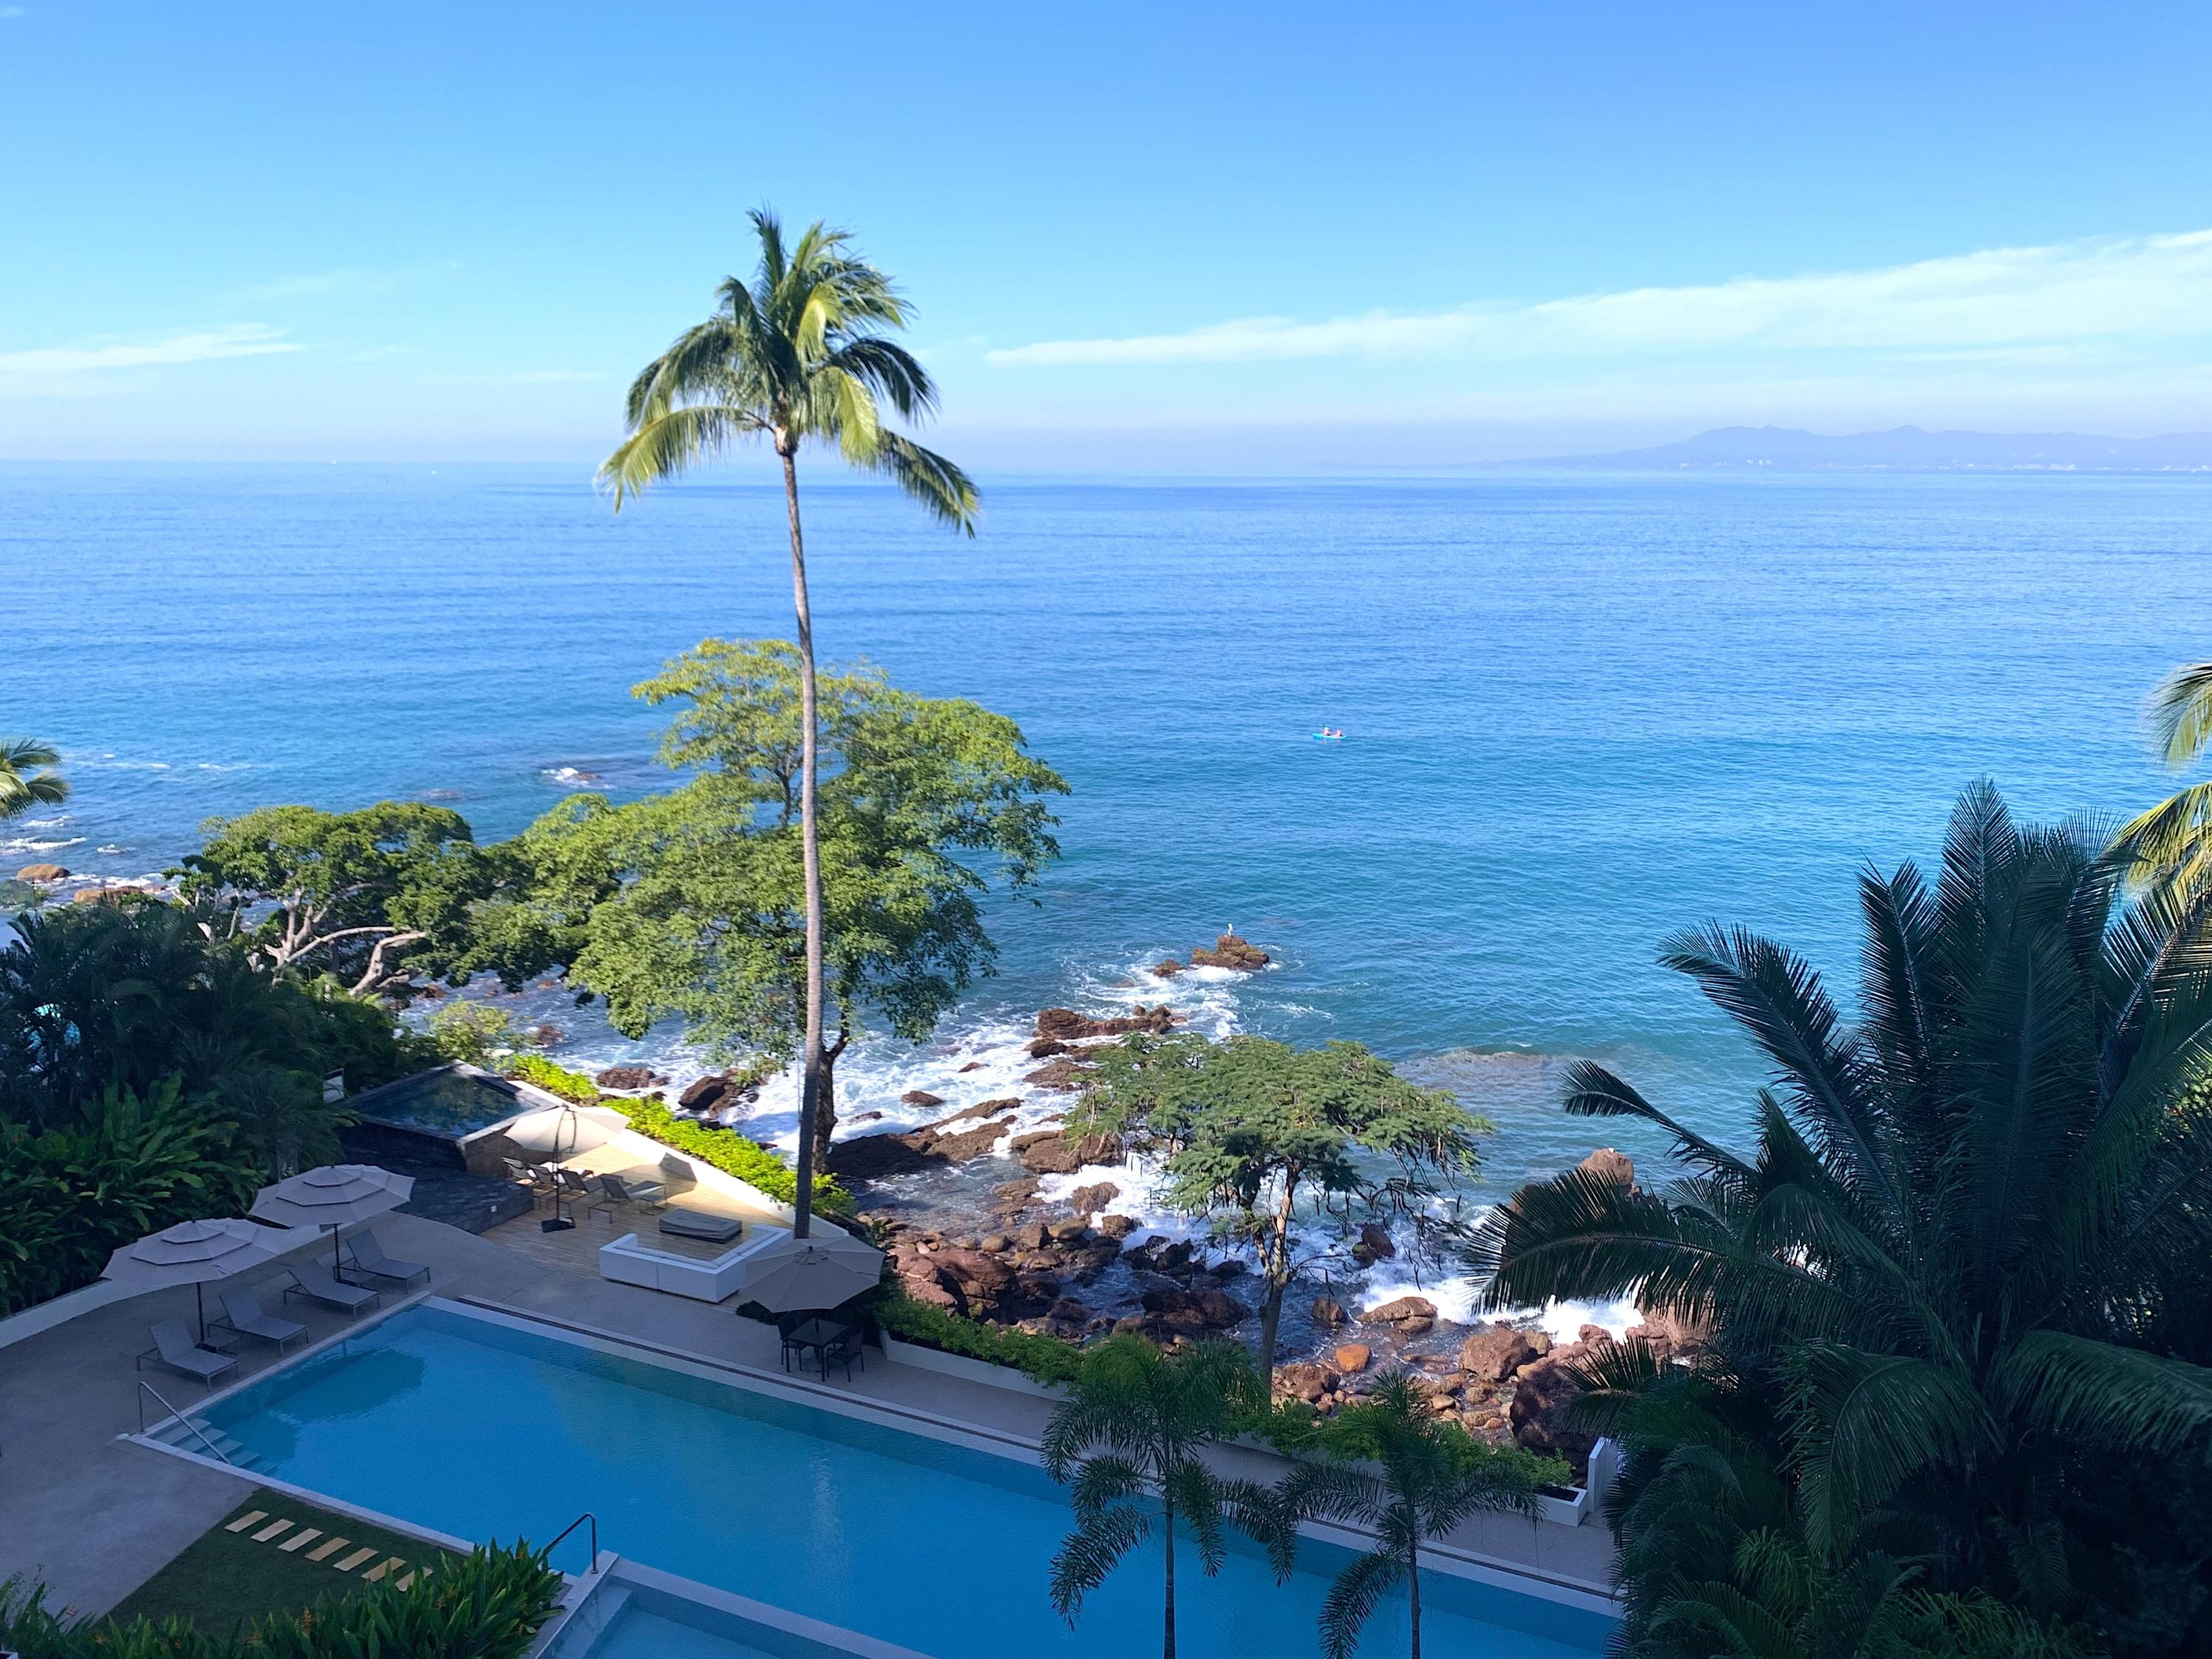 Puerto Vallarta Mls Listings